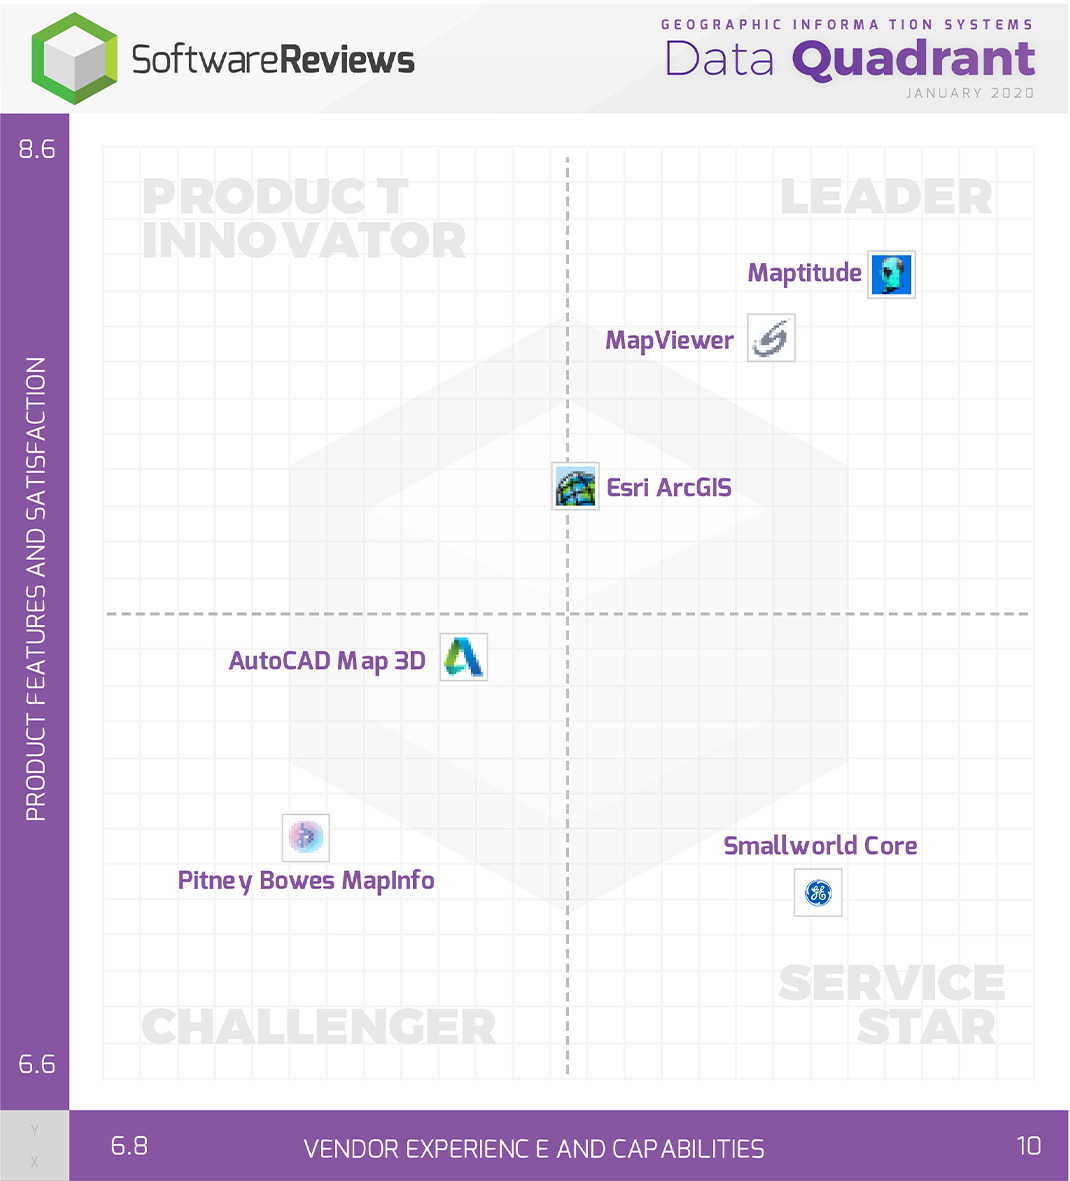 Geographic Information Systems Data Quadrant